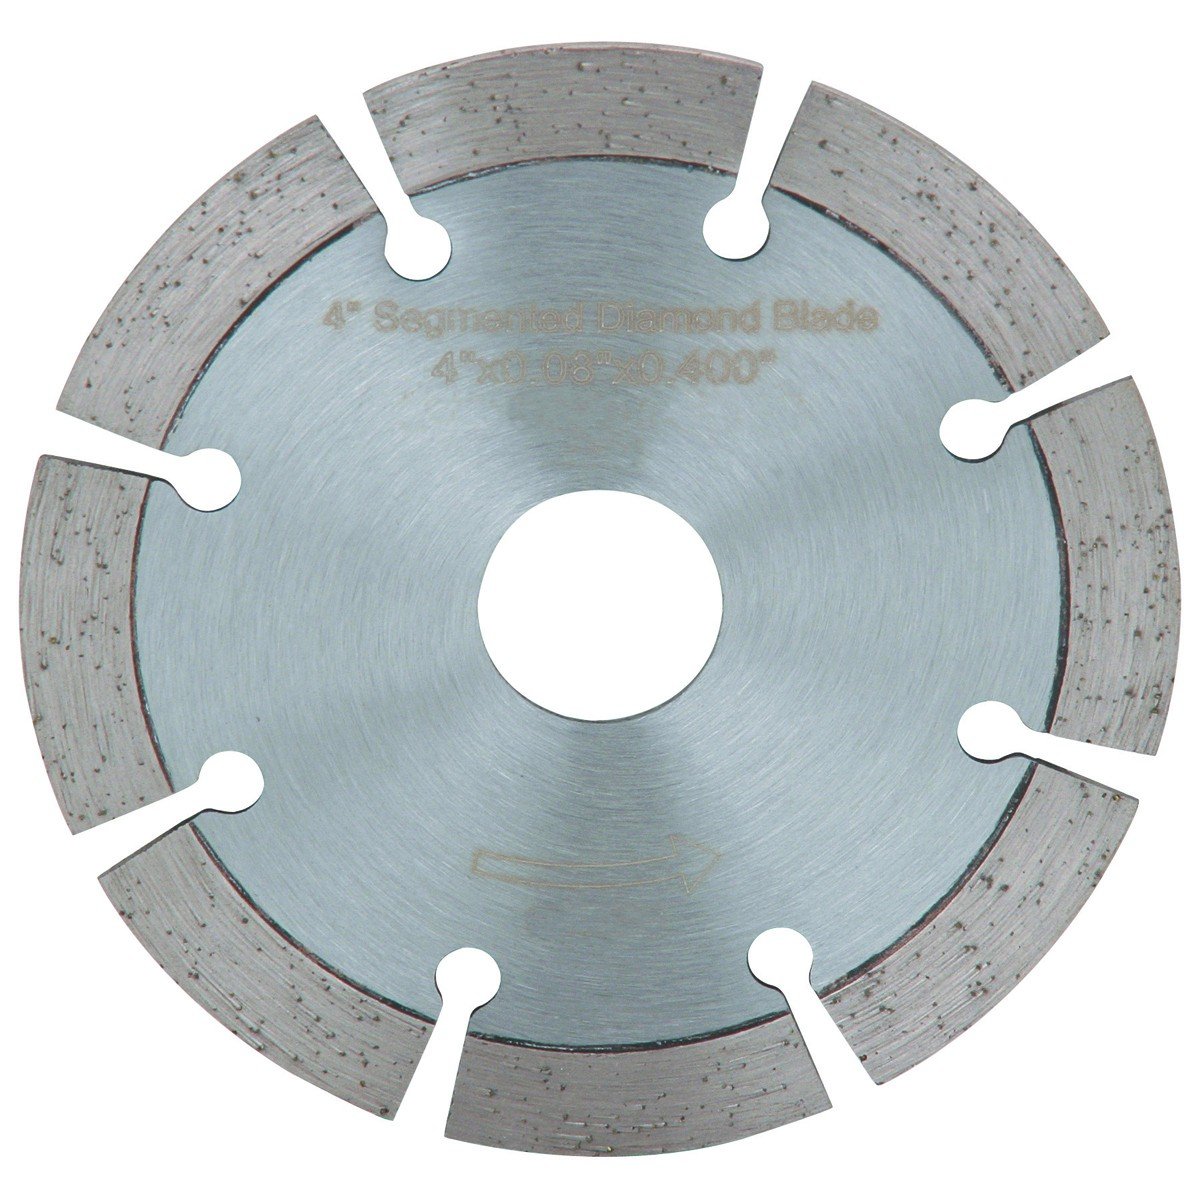 4 in. Segmented Wet or Dry Cut Diamond Blade for Masonry